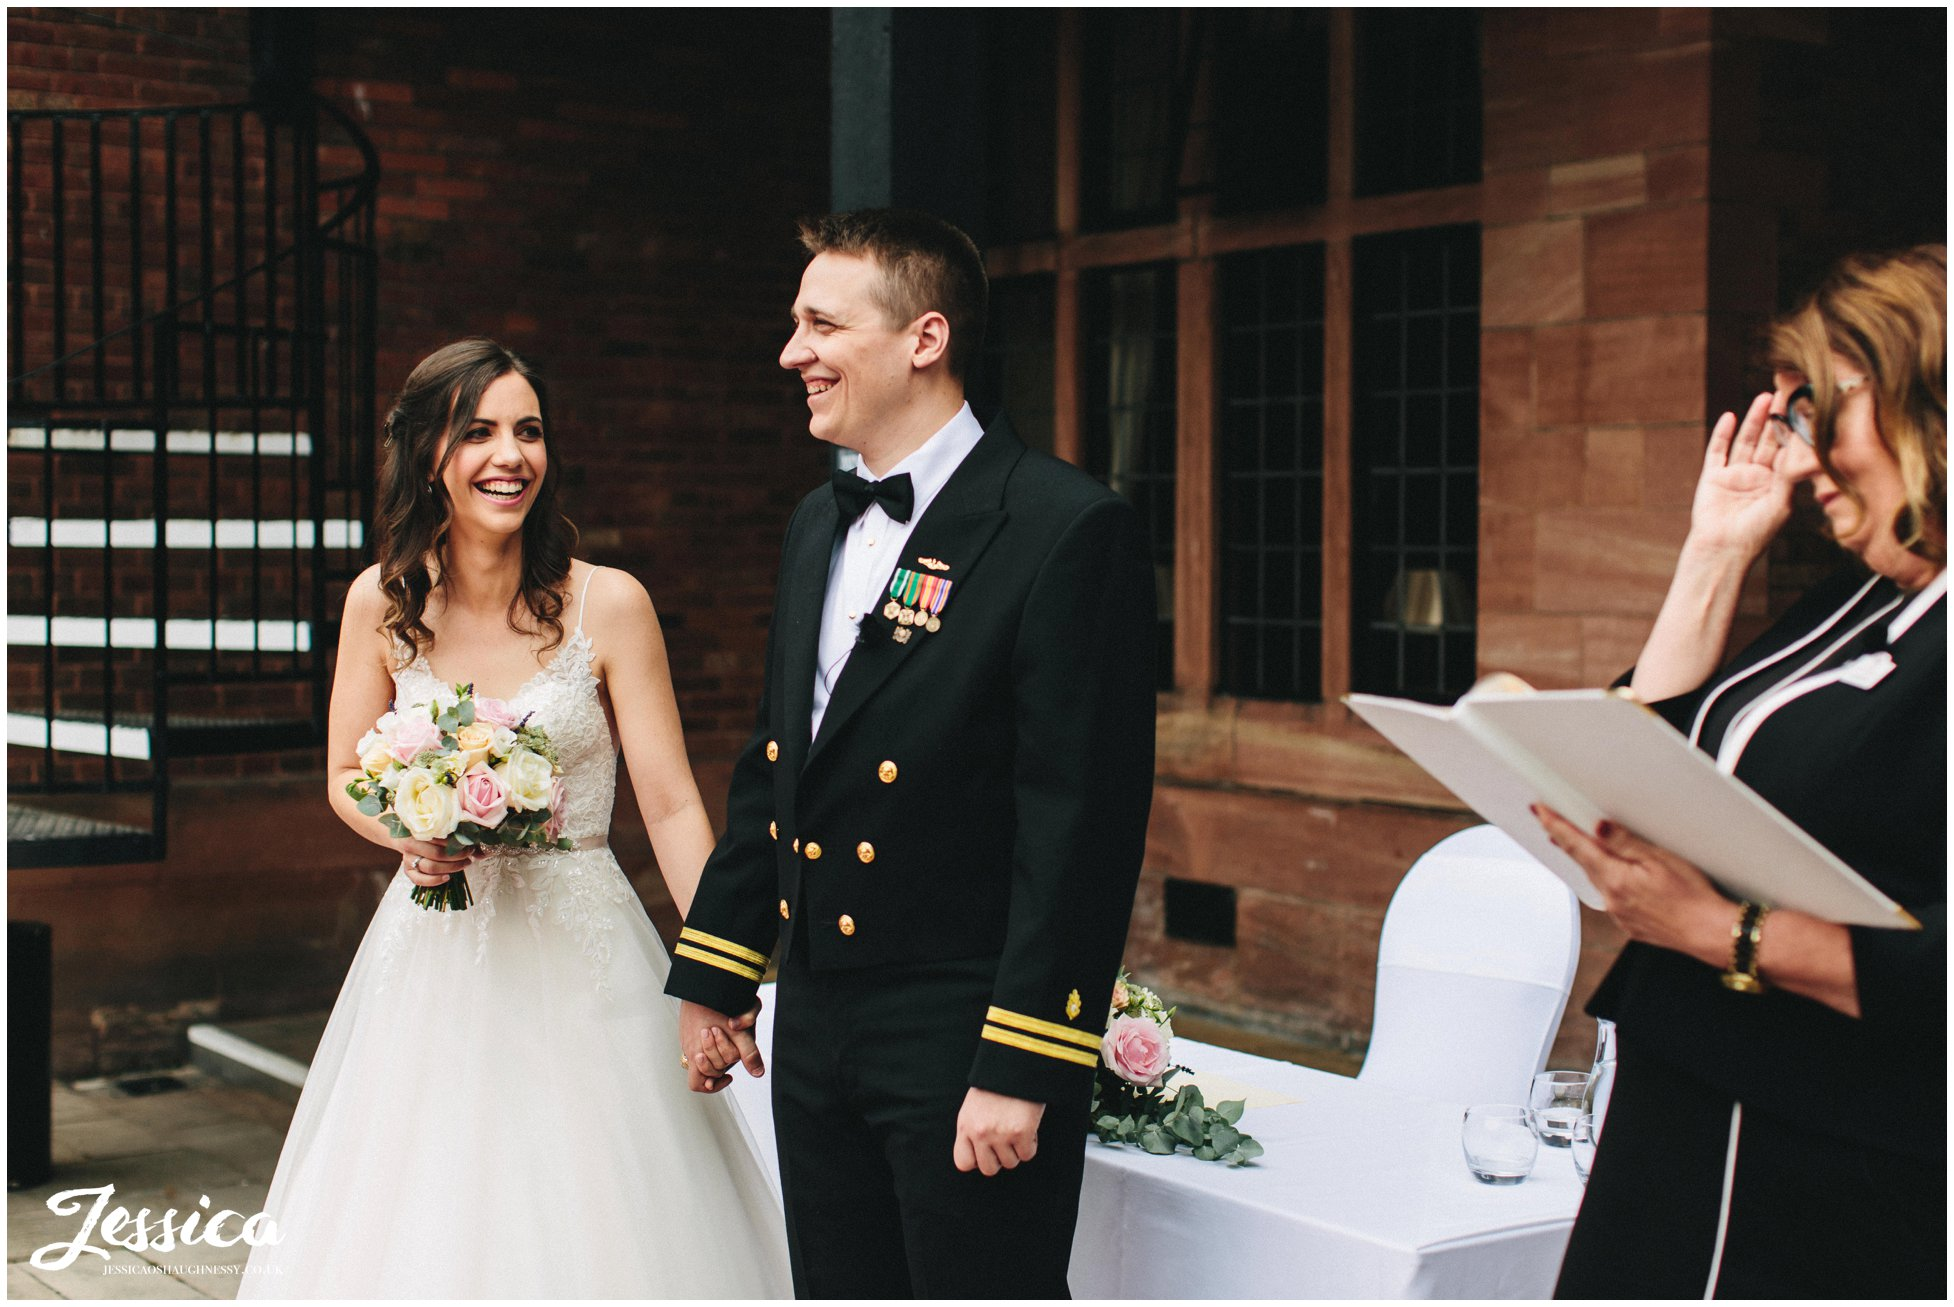 the couple hold hands laughing during their wedding ceremony